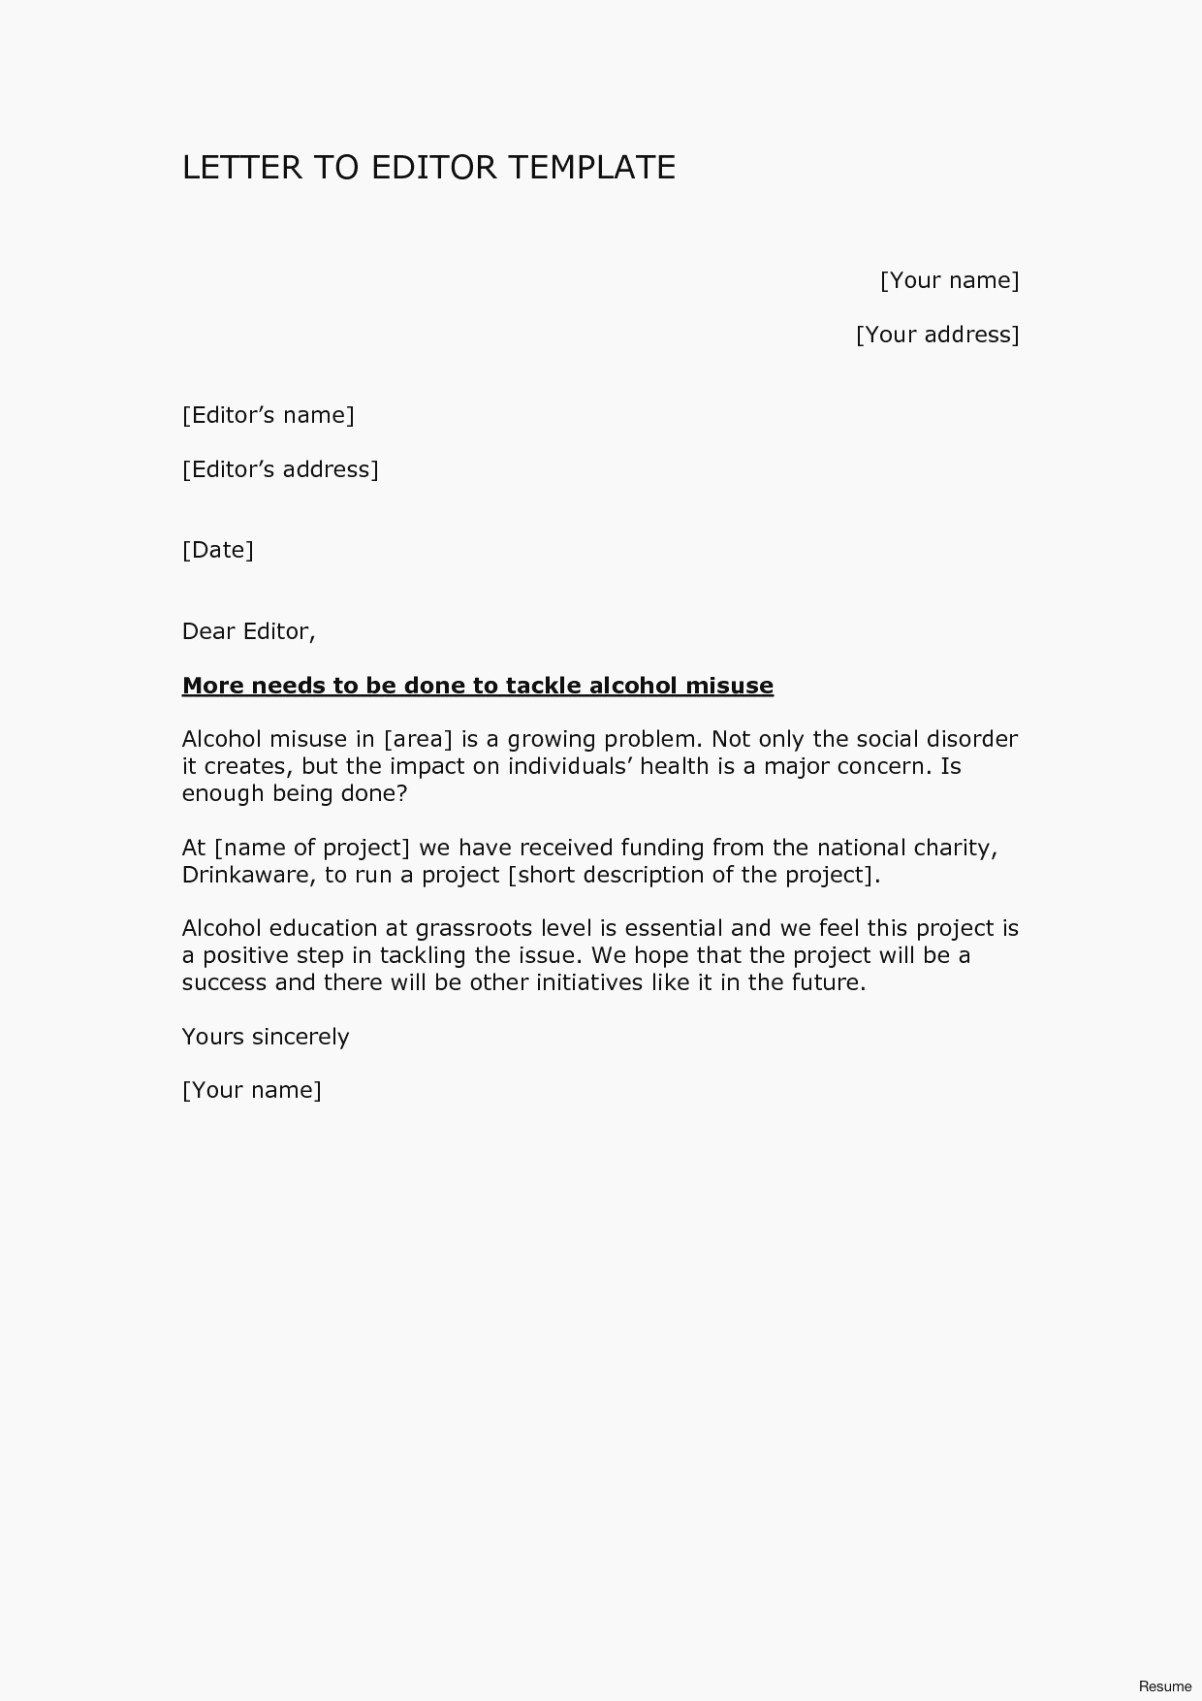 Letter To Editor Template from i.pinimg.com